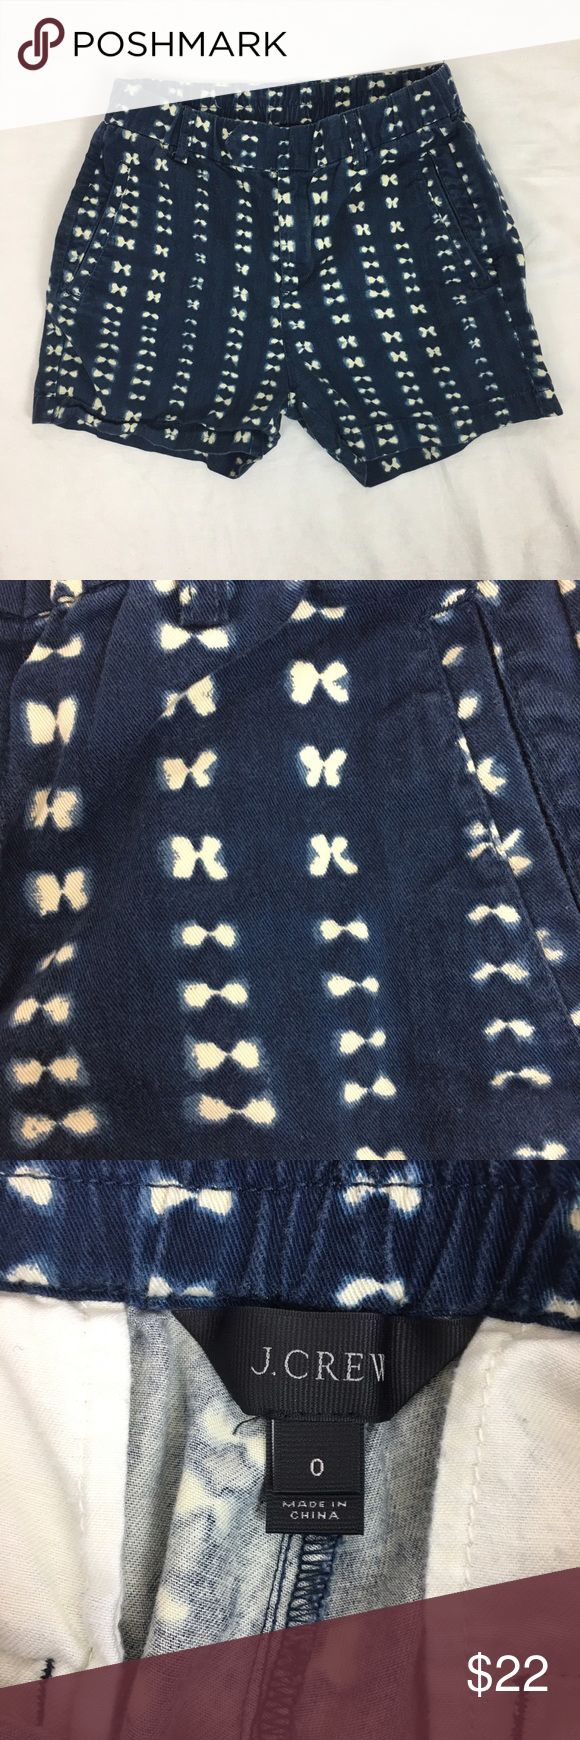 J. Crew Navy and Cream Polka Dot Shorts ADORABLE pattern Shorts by J. Crew. Navy and cream Polka Dot. Size 0. Elastic waist. GUC, slight fading from wear. The perfect summer short! J. Crew Shorts